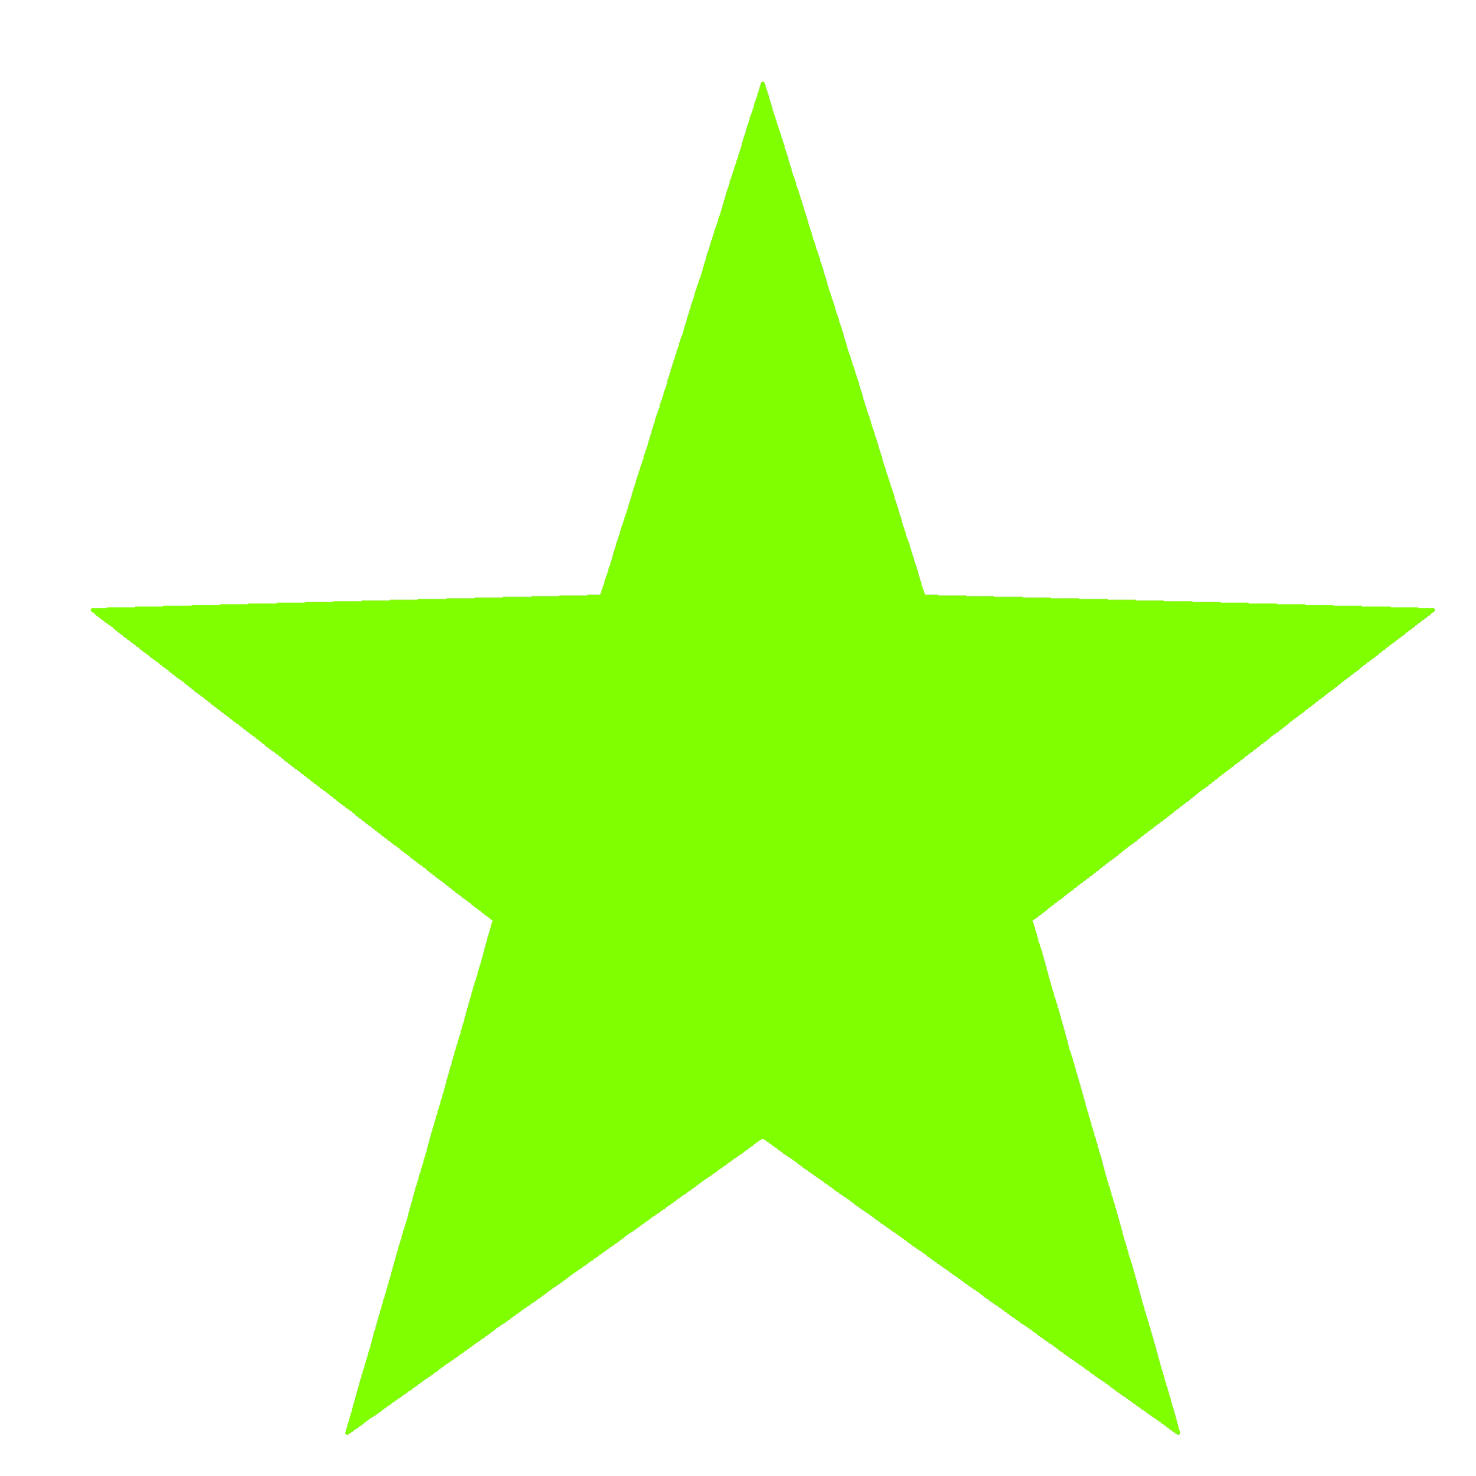 green common star graphic